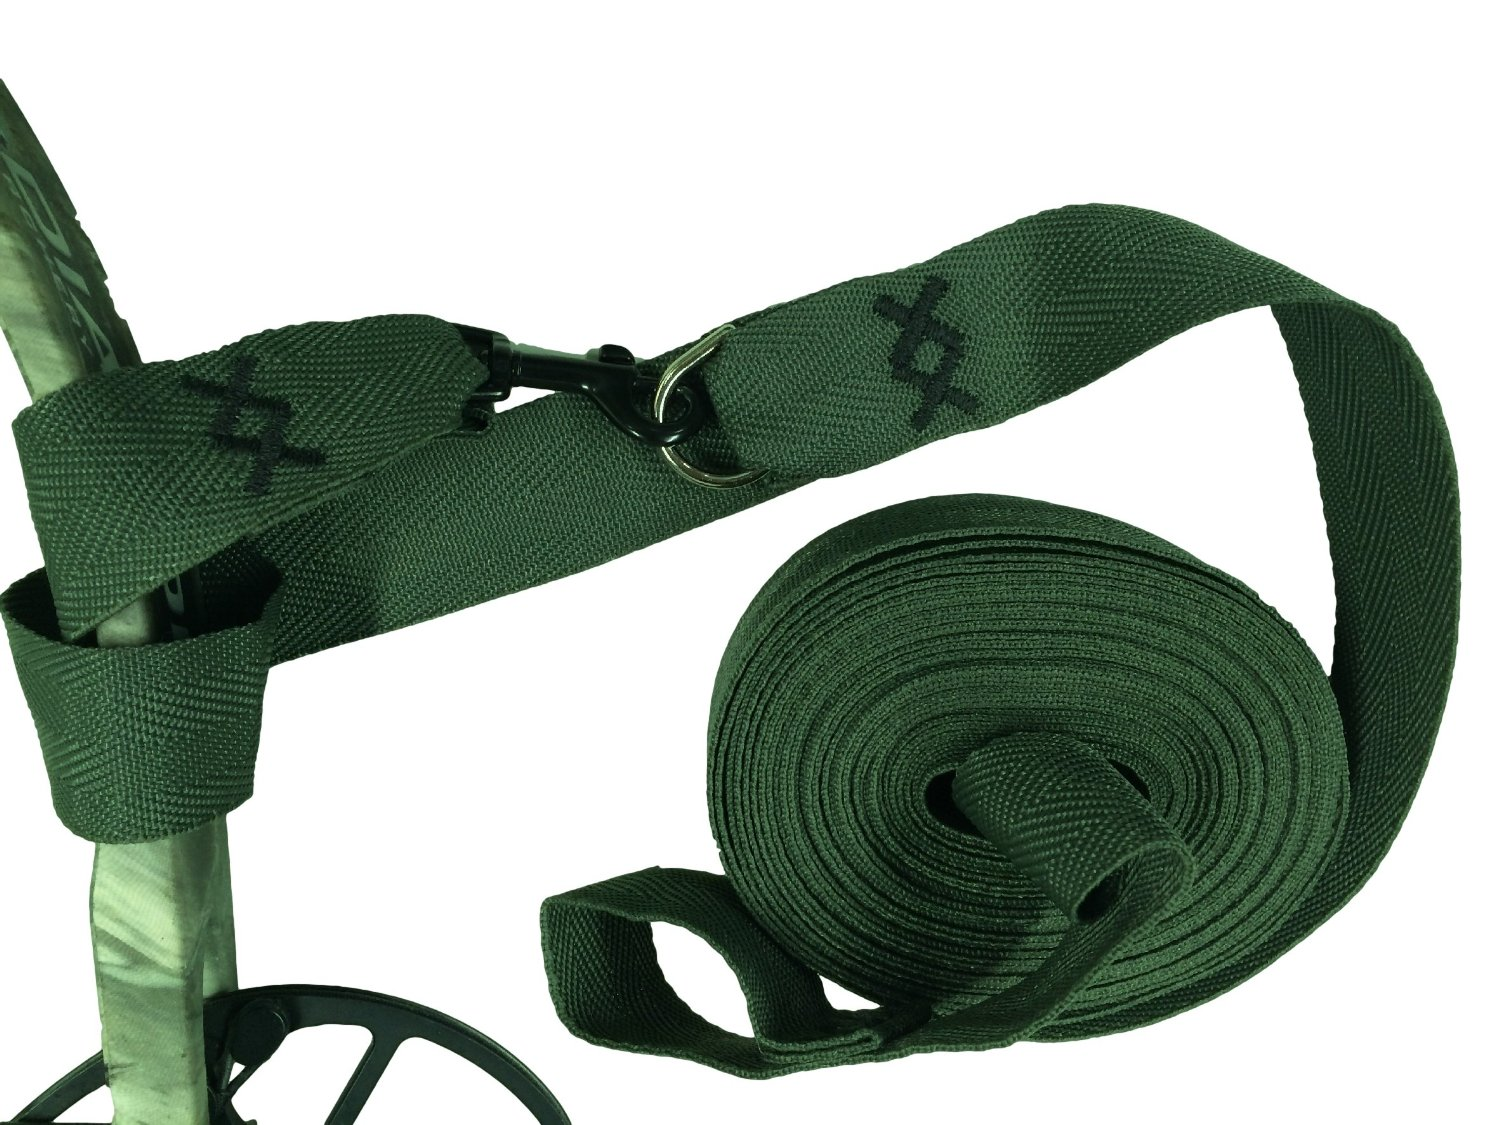 """Bow Easy Lift, Bow Pull up Strap Over 27 foot long! Much Easier on Your Hands in Cold or Wet Weather. At 1-3/8"""" Wide You Have Much Better Control. A Double Wrap Connection System Insures Your Equipment is Safe."""